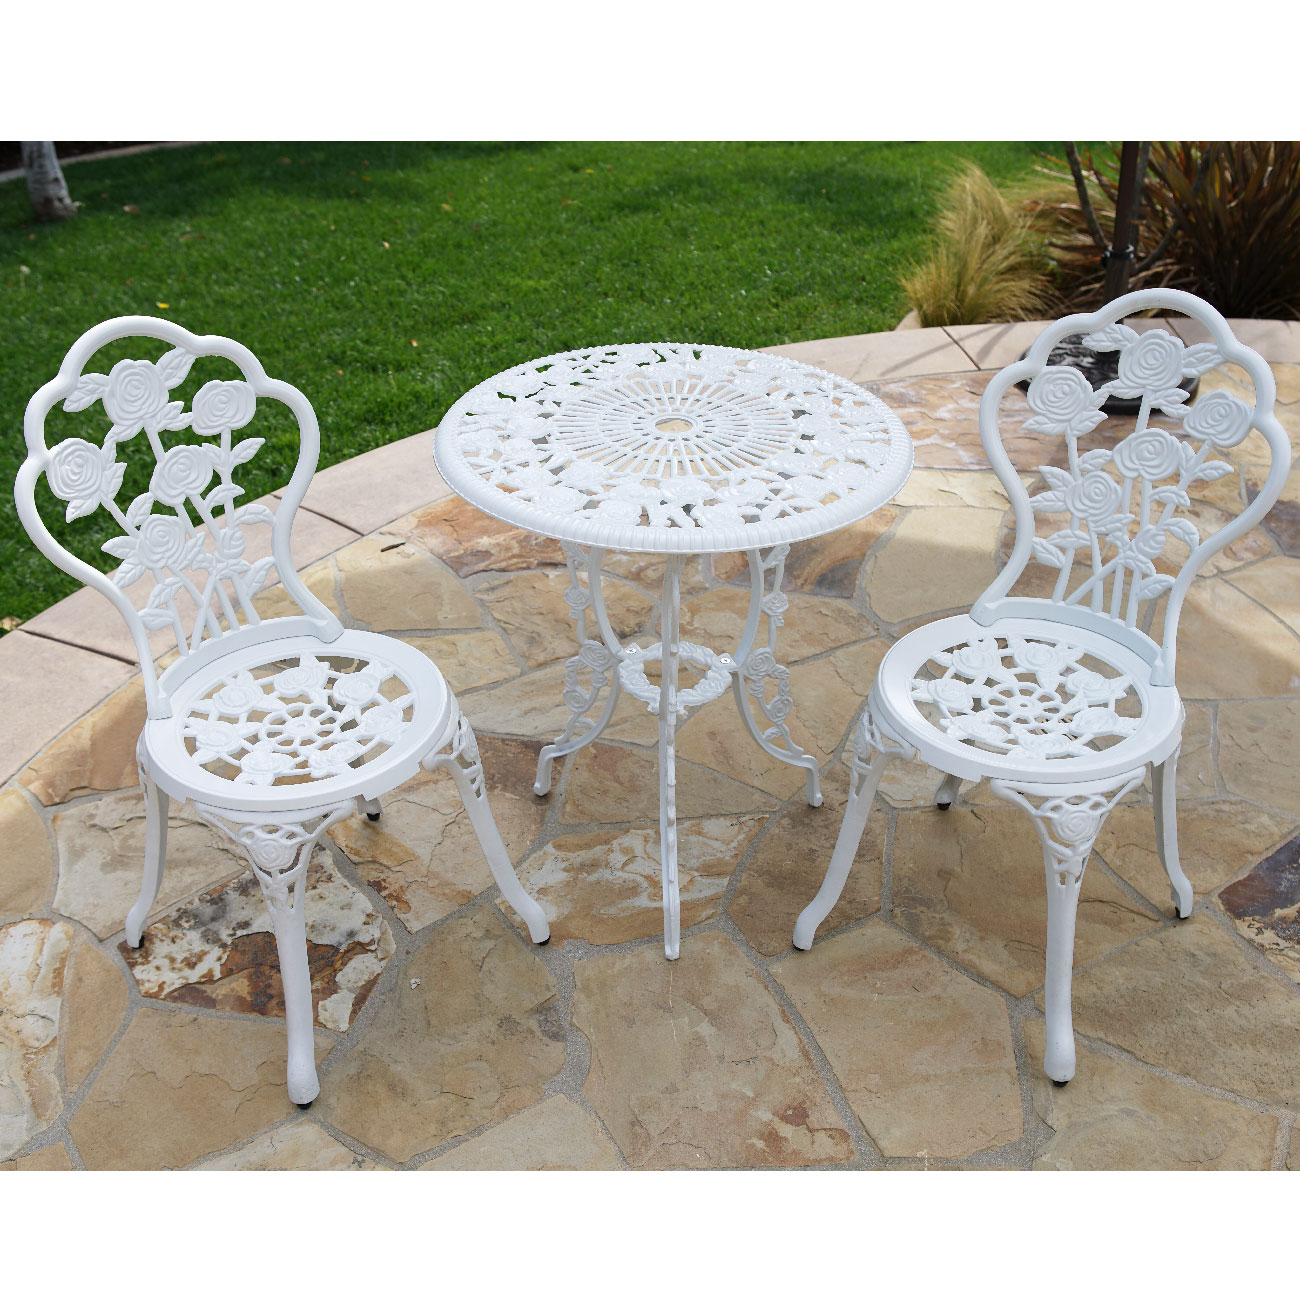 Merveilleux Belleze 3 Piece Outdoor Patio Bistro Set Rose Design Weather Resistant  Round Table Chairs